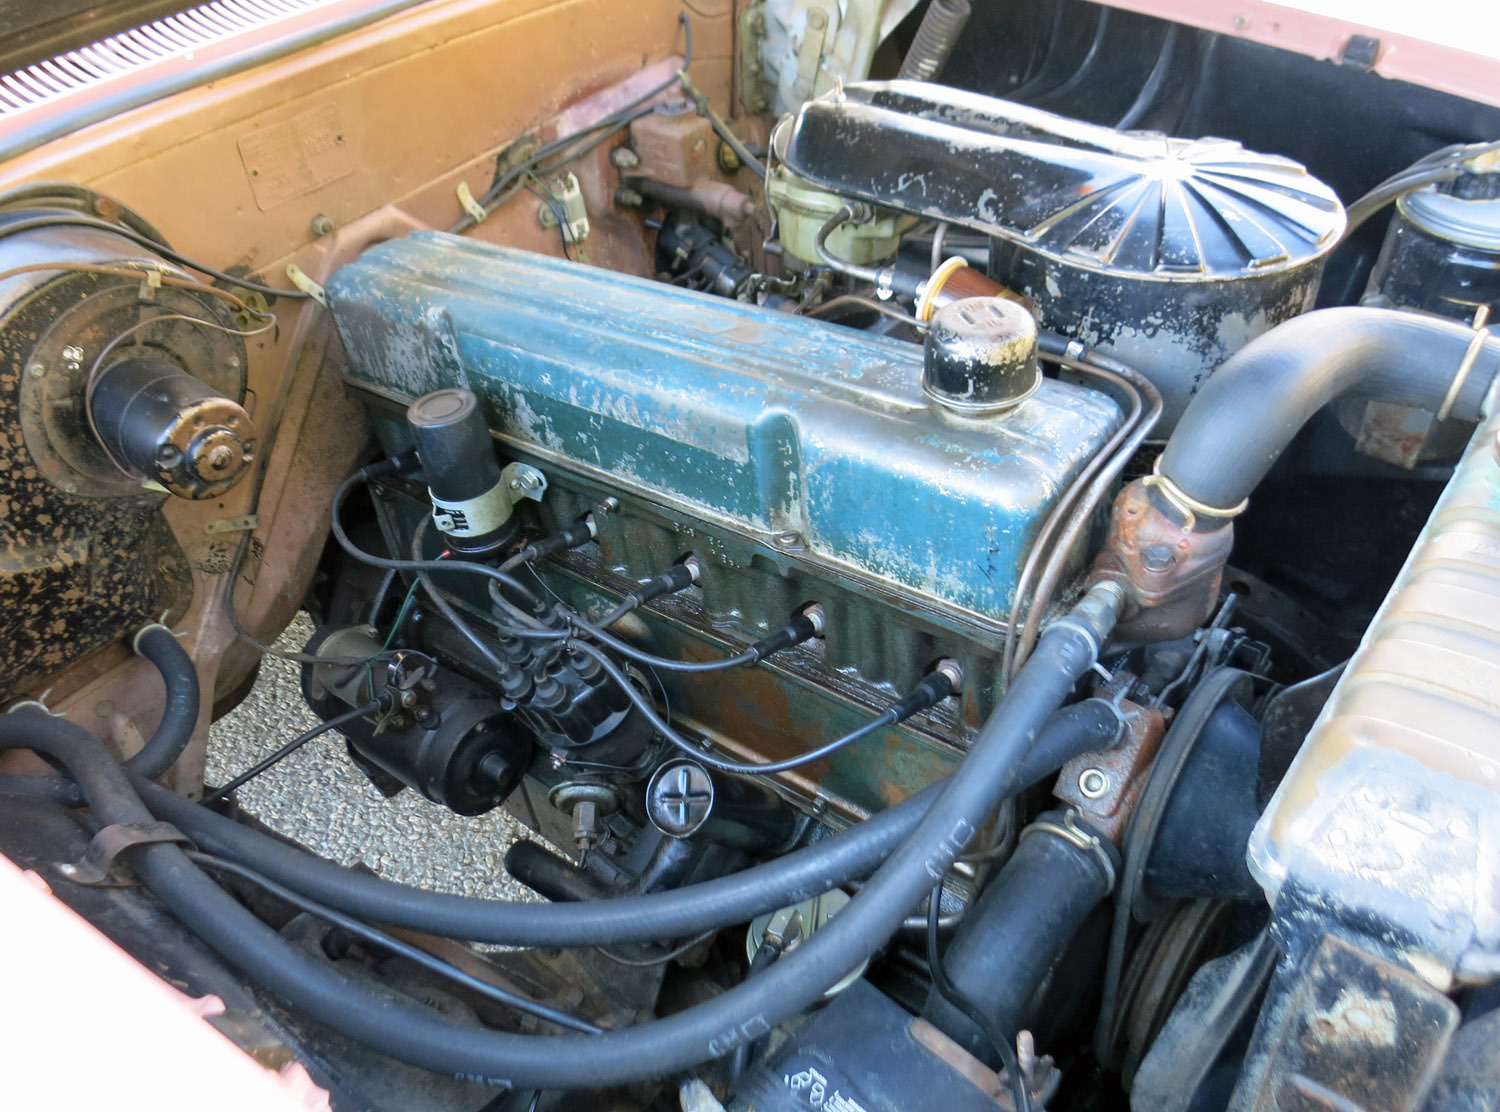 1958 Chevrolet 6 Cylinder Engine. 1958. Engine Problems And Solutions